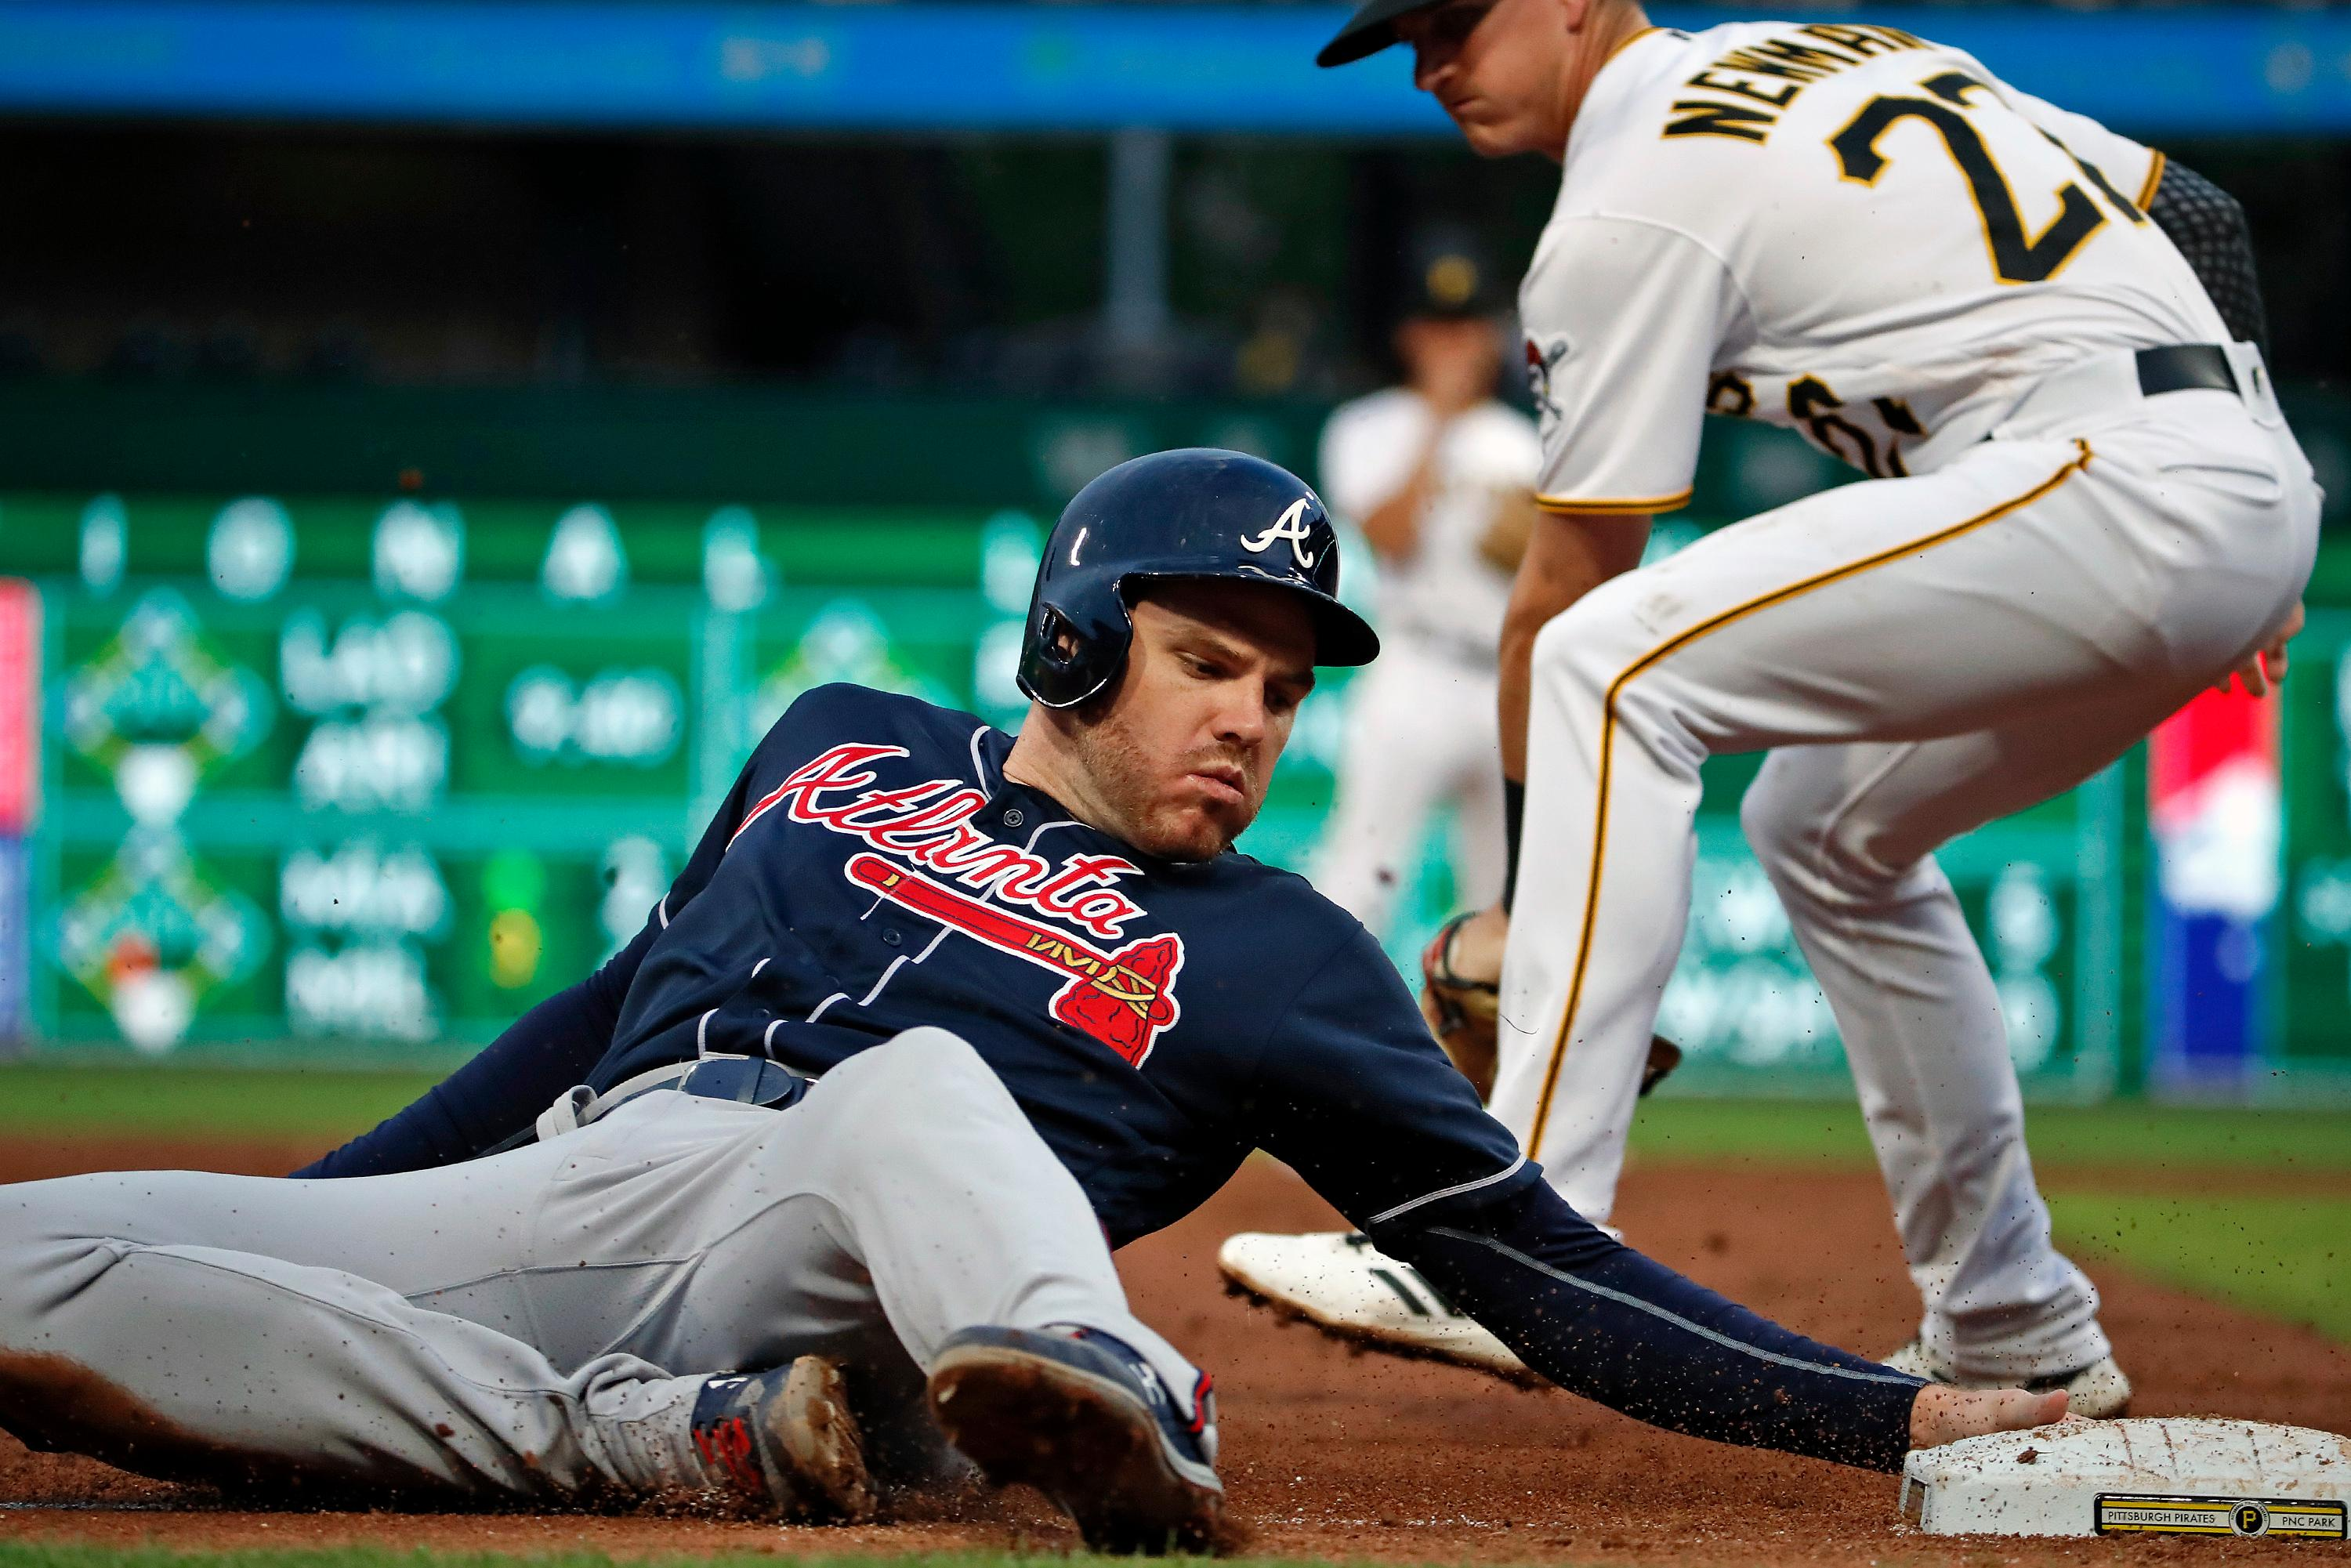 Atlanta Braves' Freddie Freeman, left, advances to third ahead of the attempted tag by Pittsburgh Pirates third baseman Kevin Newman on a pop foul by Austin Riley during the third inning of a baseball game in Pittsburgh, Tuesday, June 4, 2019.(AP Photo/Gene J. Puskar)